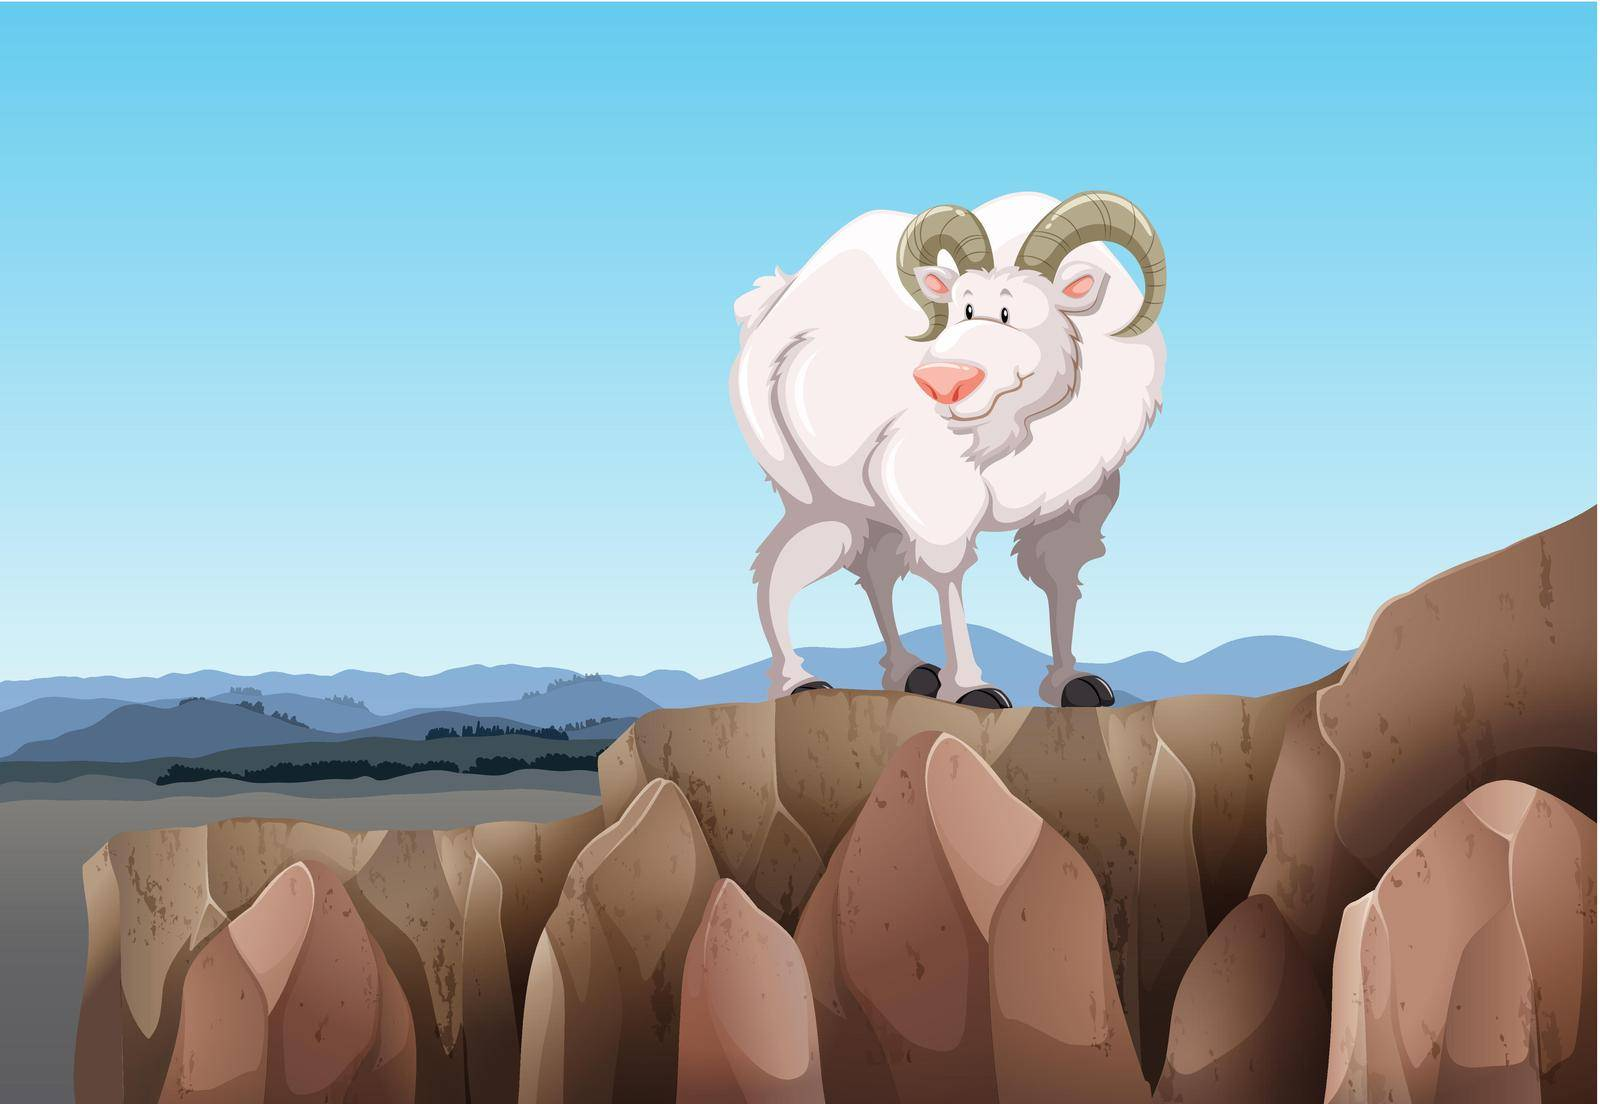 White goat standing on a mountain